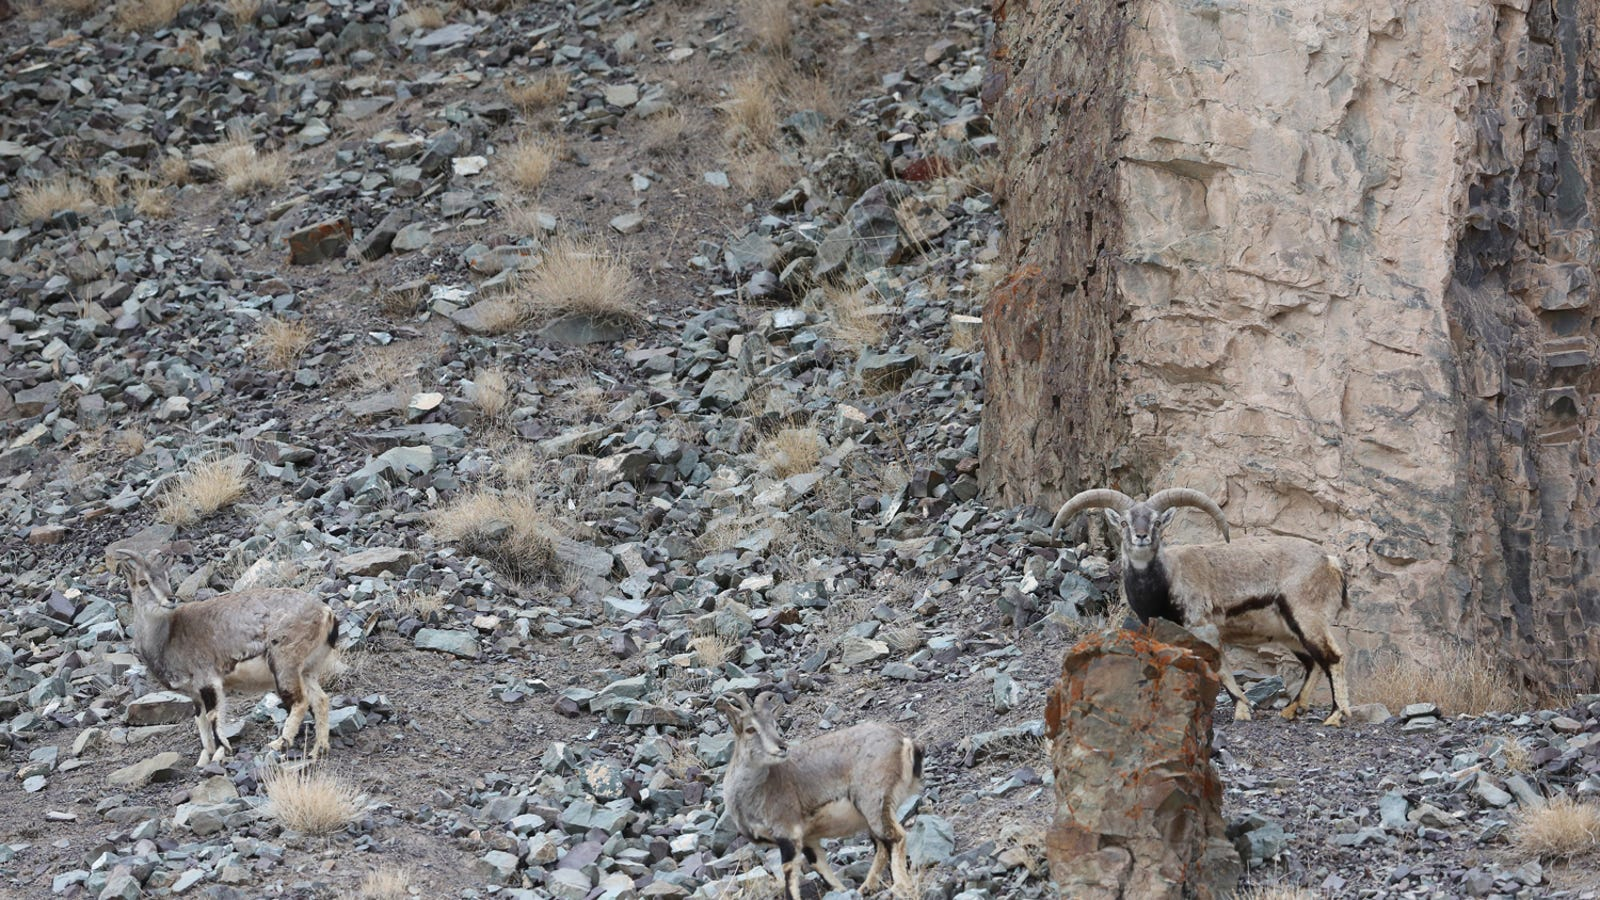 Can You Find The Perfectly Camouflaged Snow Leopard Hidden On This